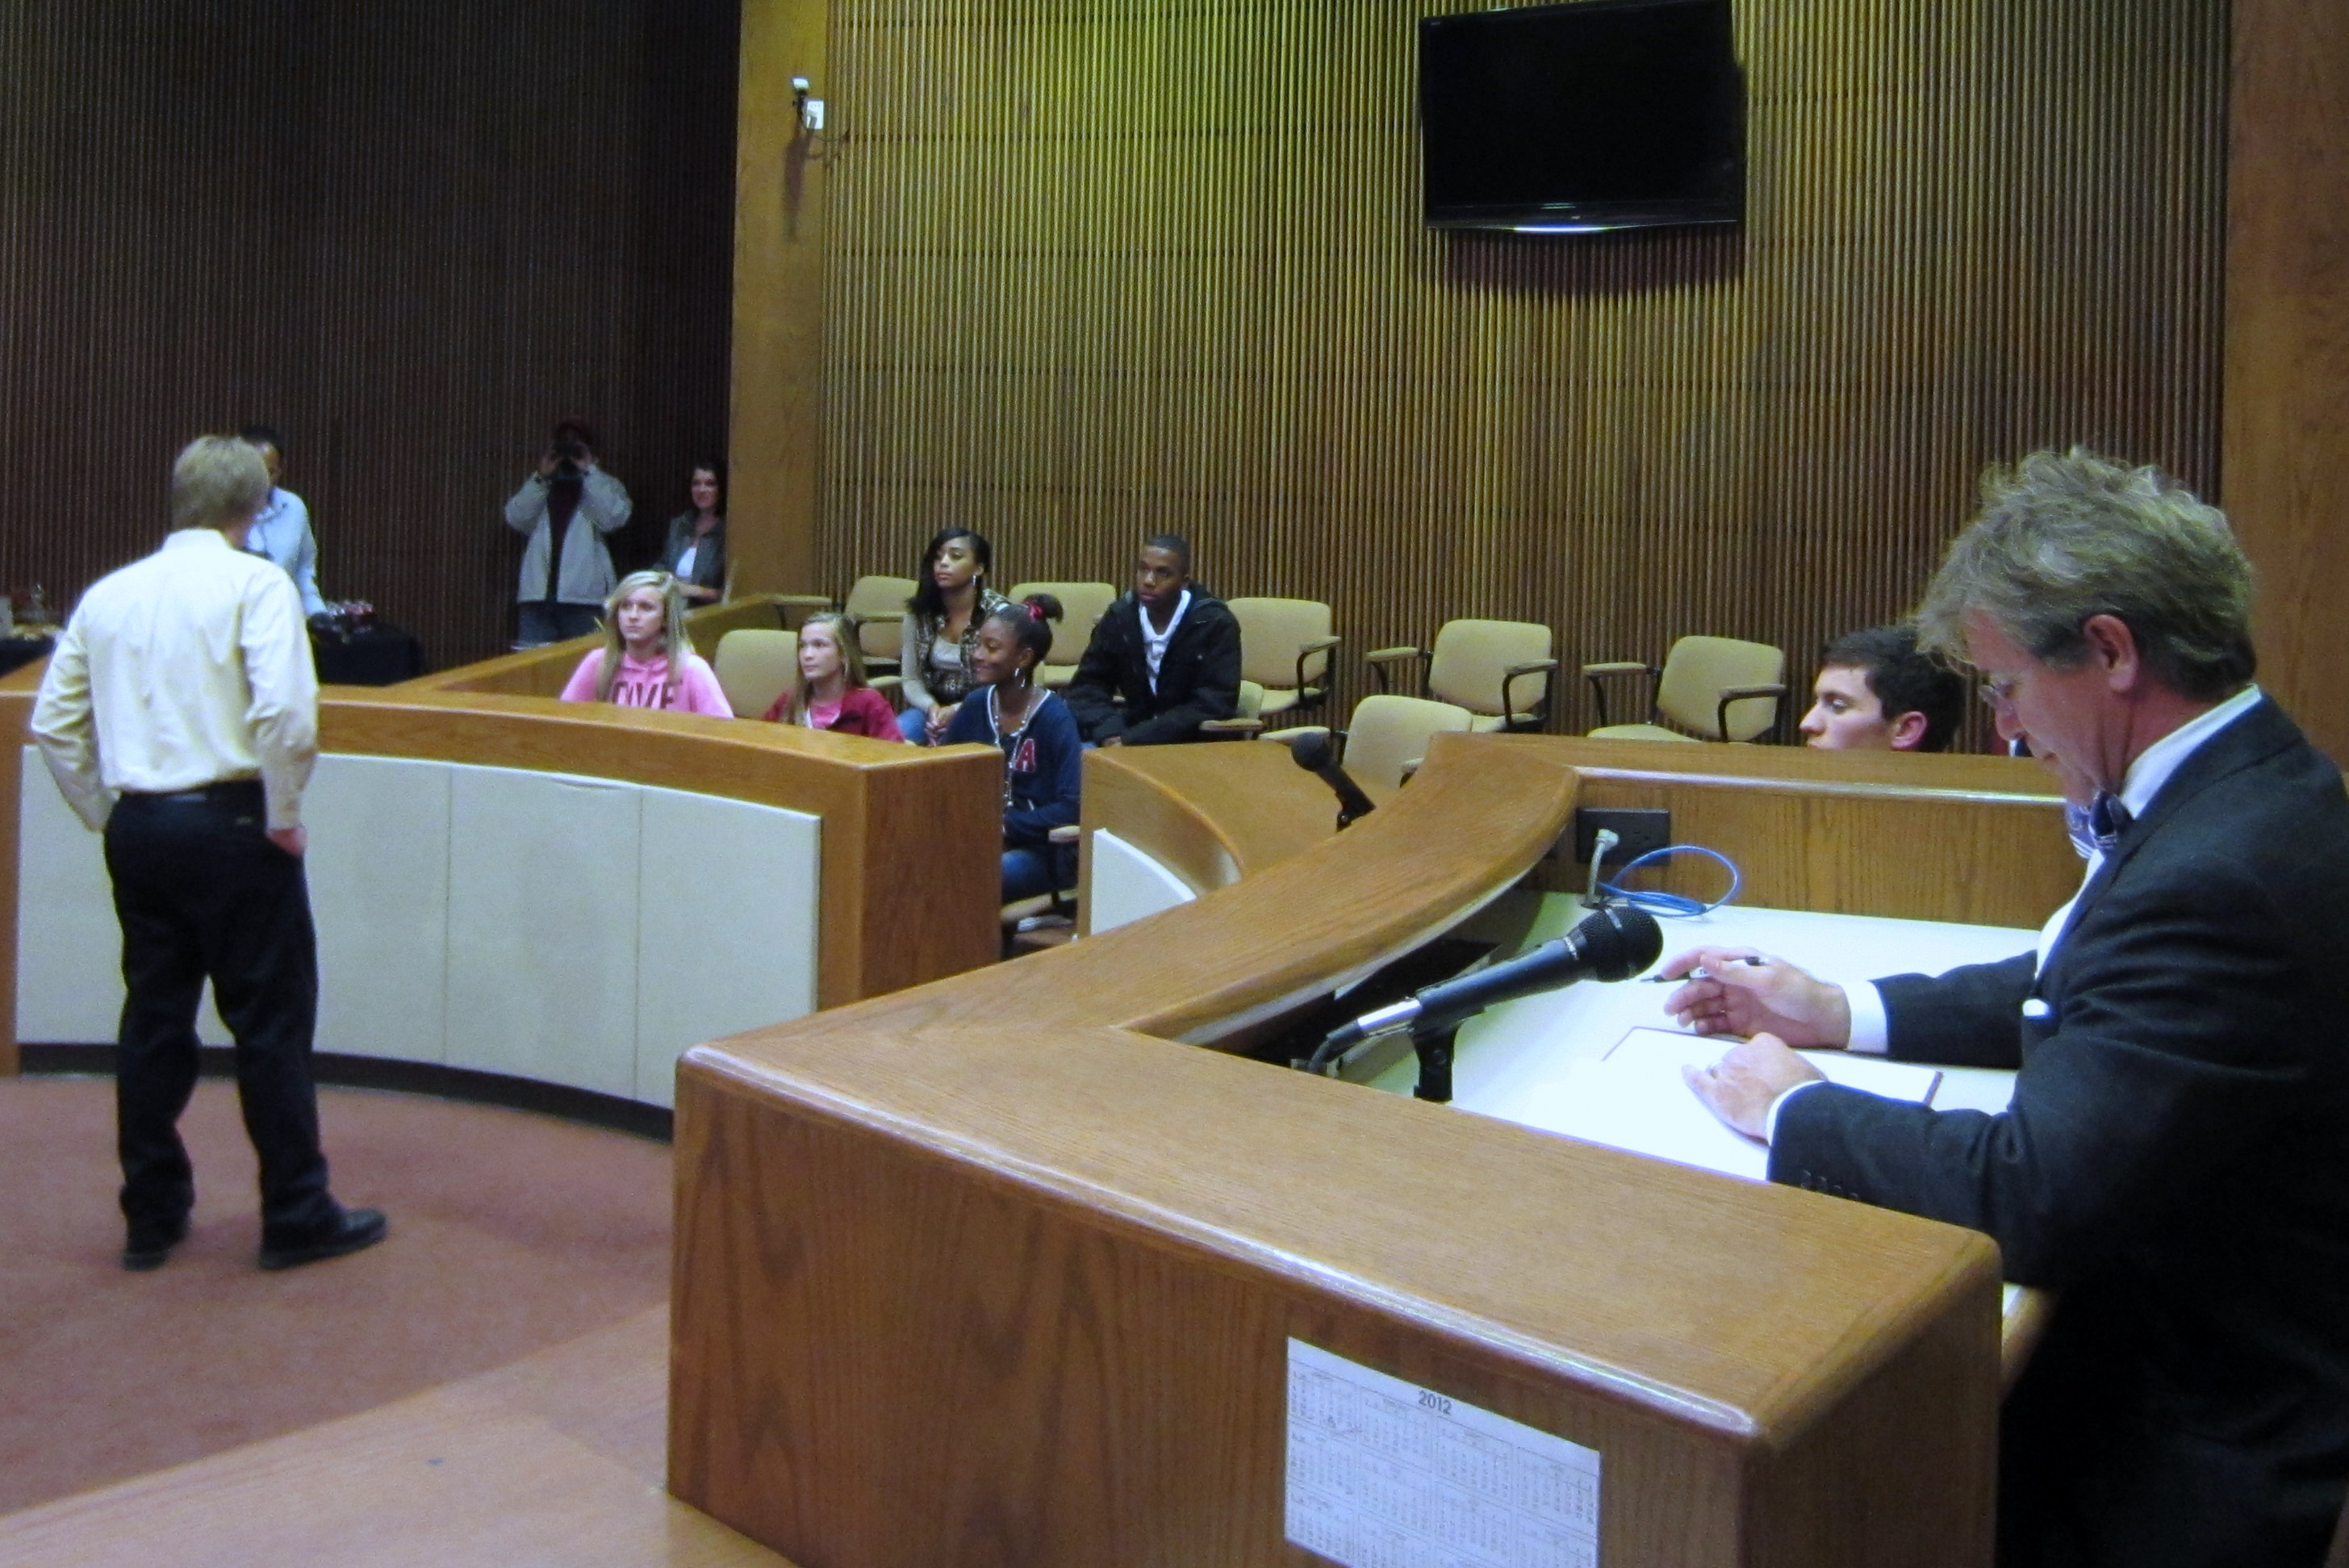 An attorney speaks to the teen jury